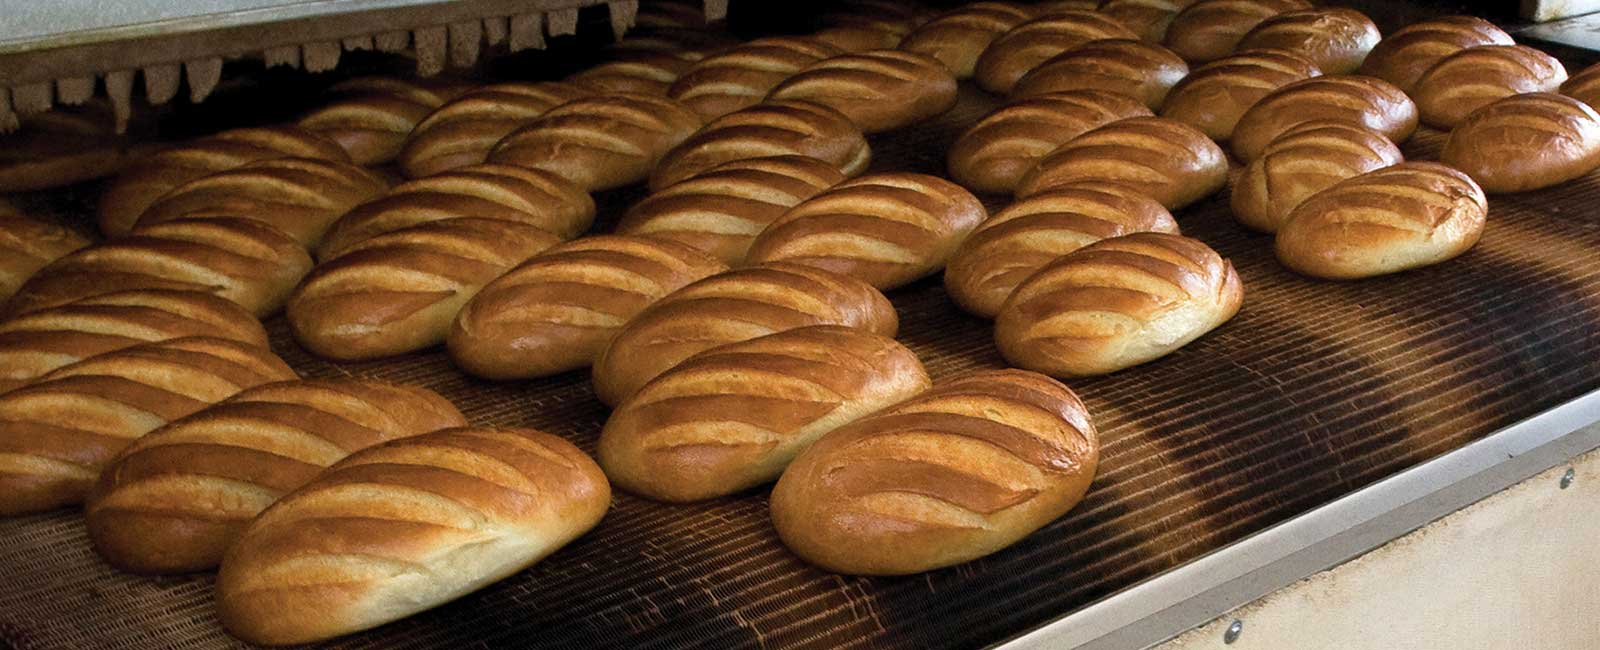 Loaves of bread in an industrial oven.